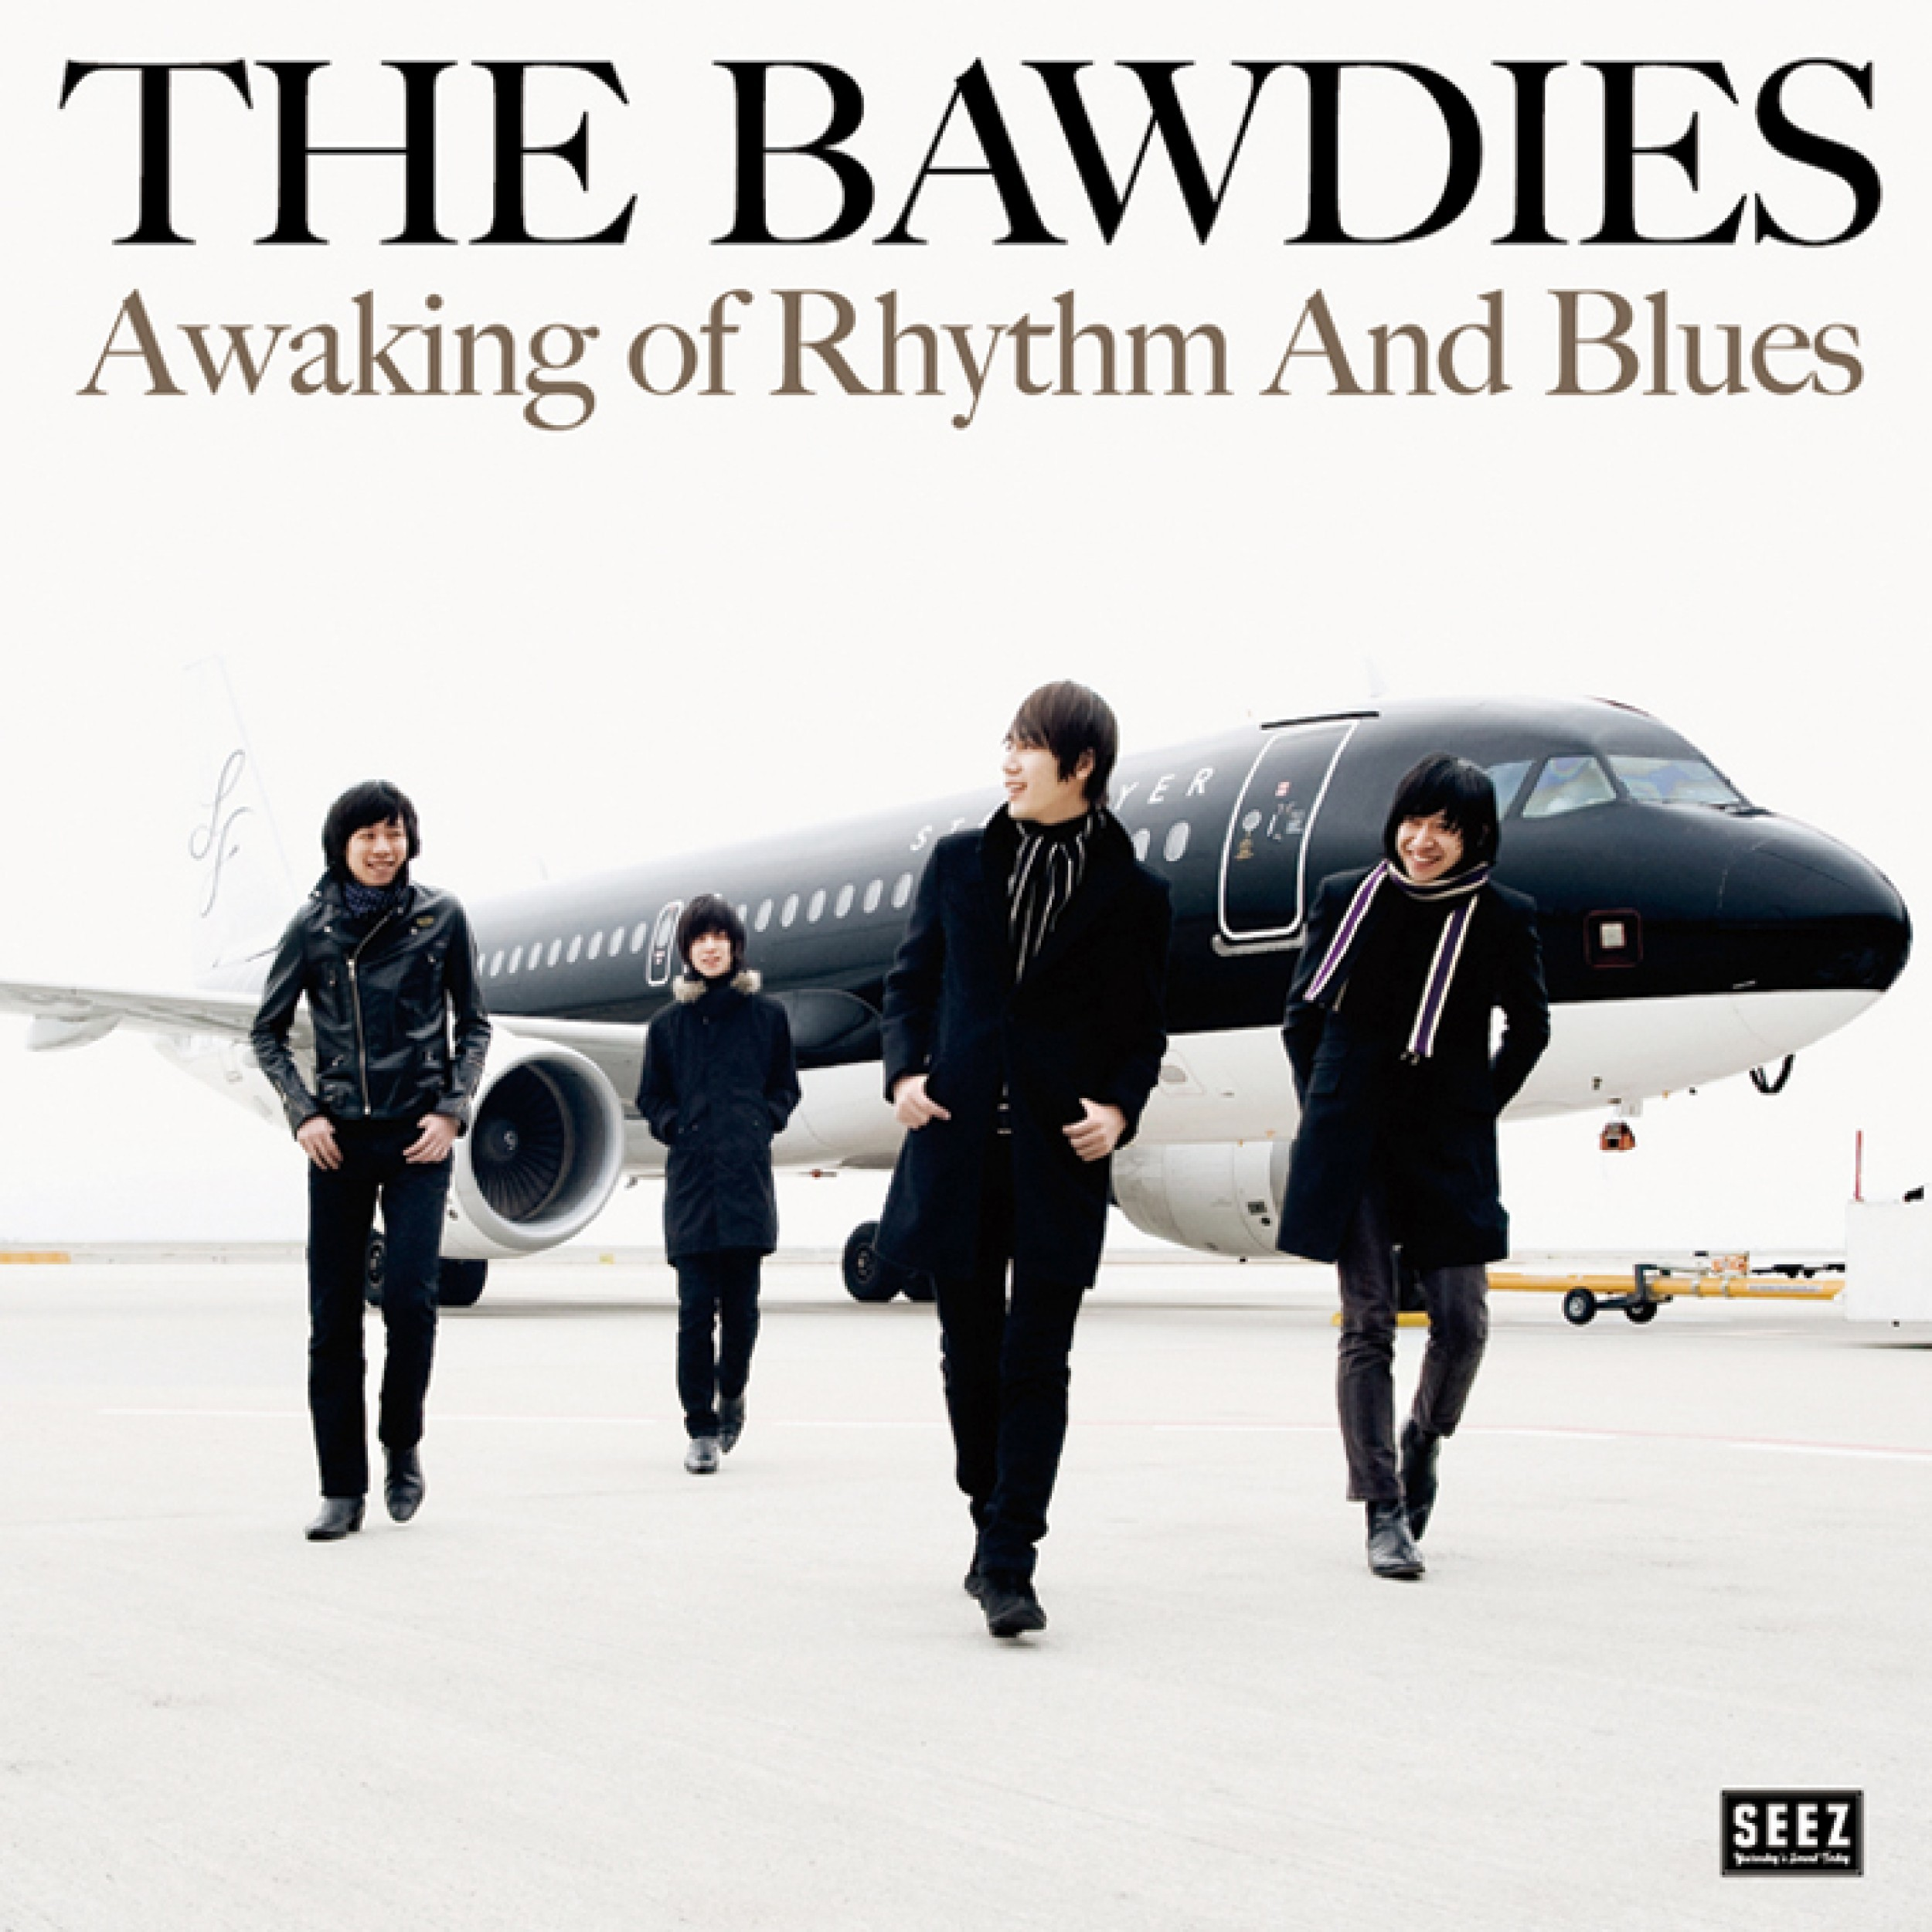 Image of Awaking Of Rhythm And Blues / THE BAWDIES